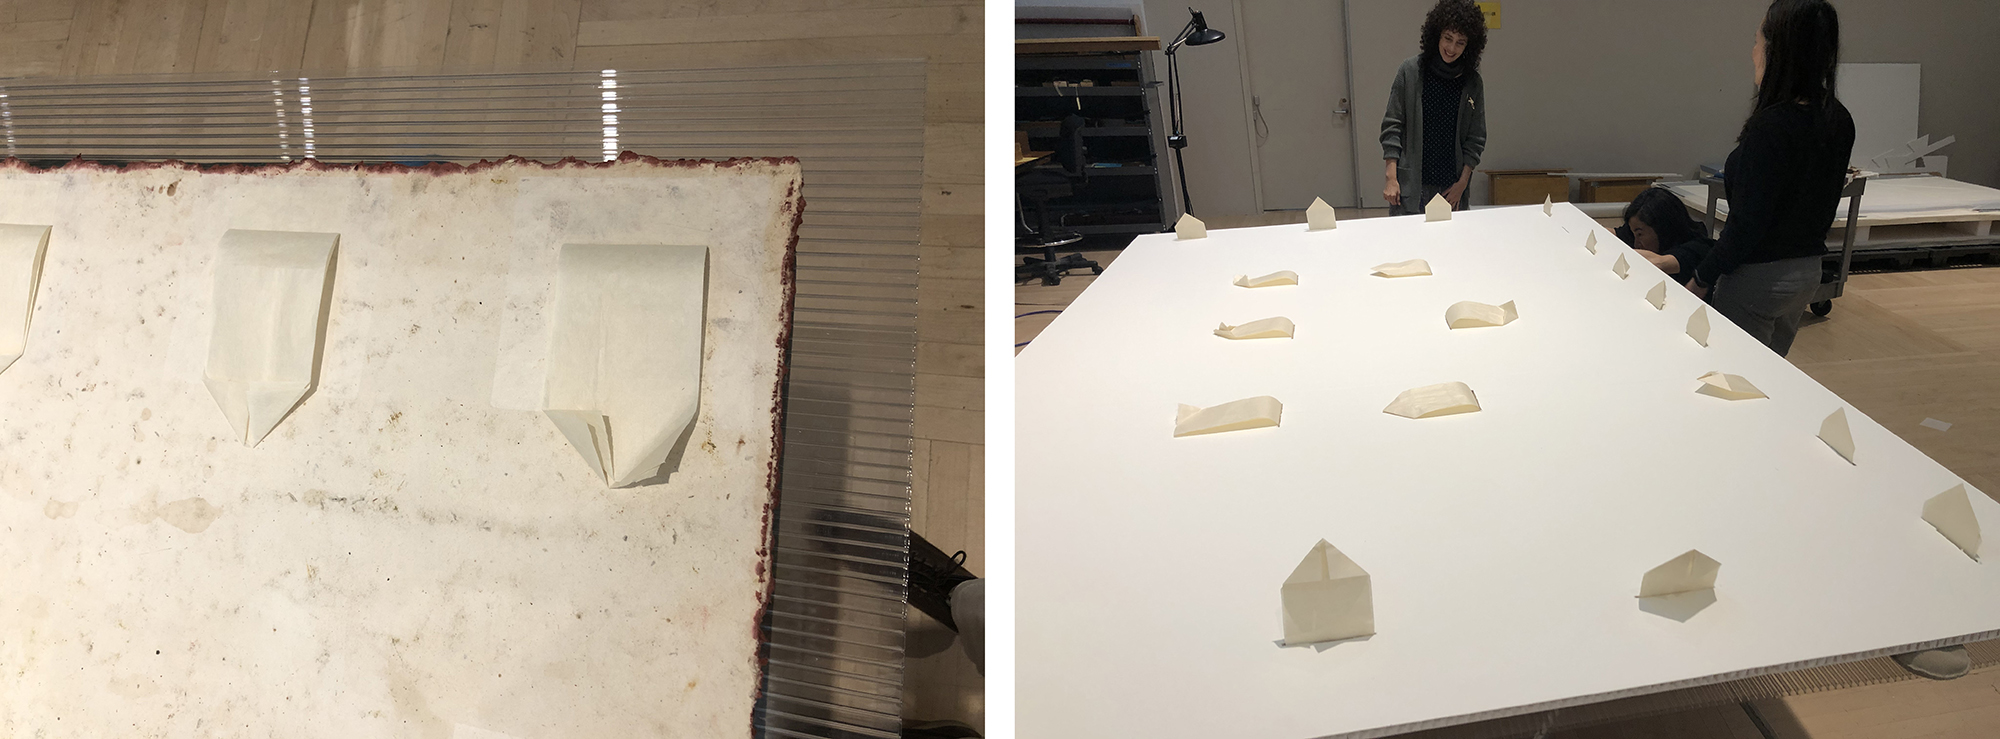 Left: Japanese paper hinges attached with wheat starch paste to the back of the print, photo courtesy of Madison Brockman; Right: Hinges passes through slots in a rigid honeycomb paper board for display, photo courtesy of Madison Brockman